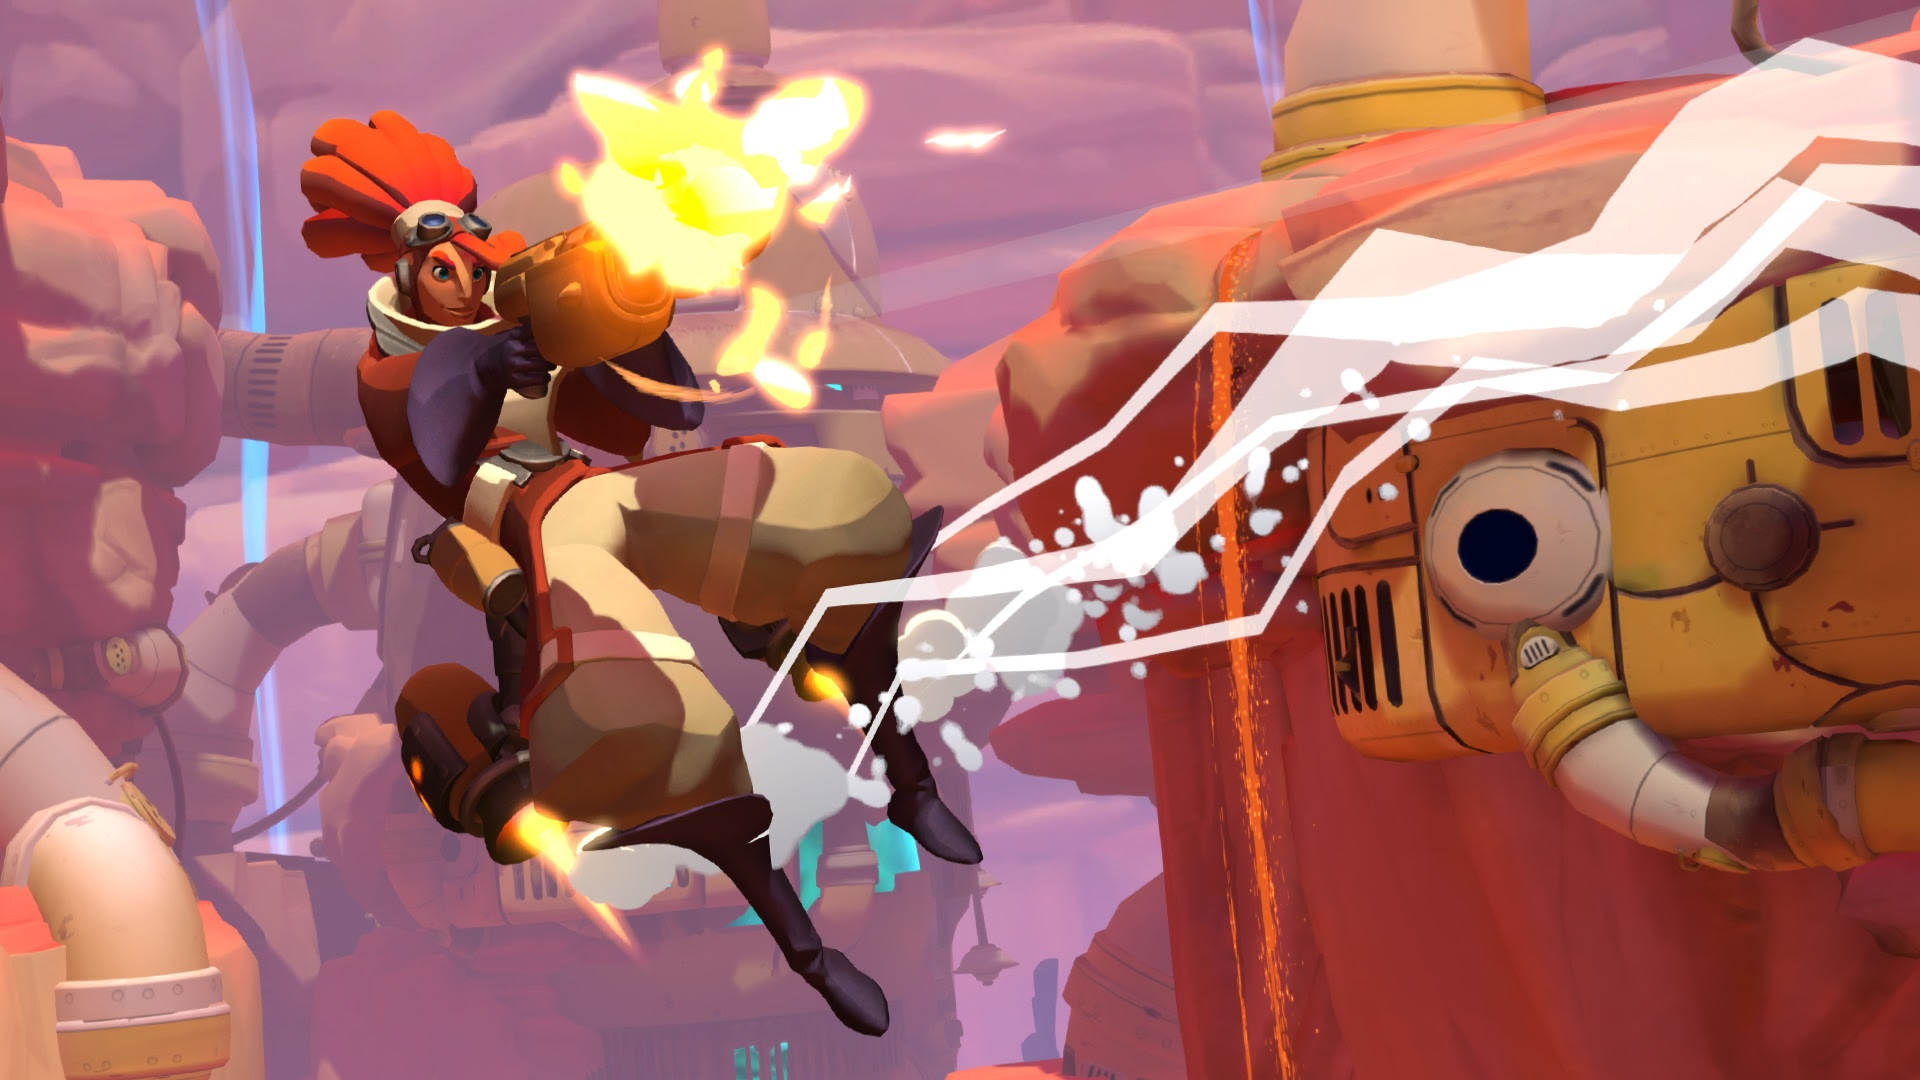 Big news: Gigantic should launch by the end of June screenshot